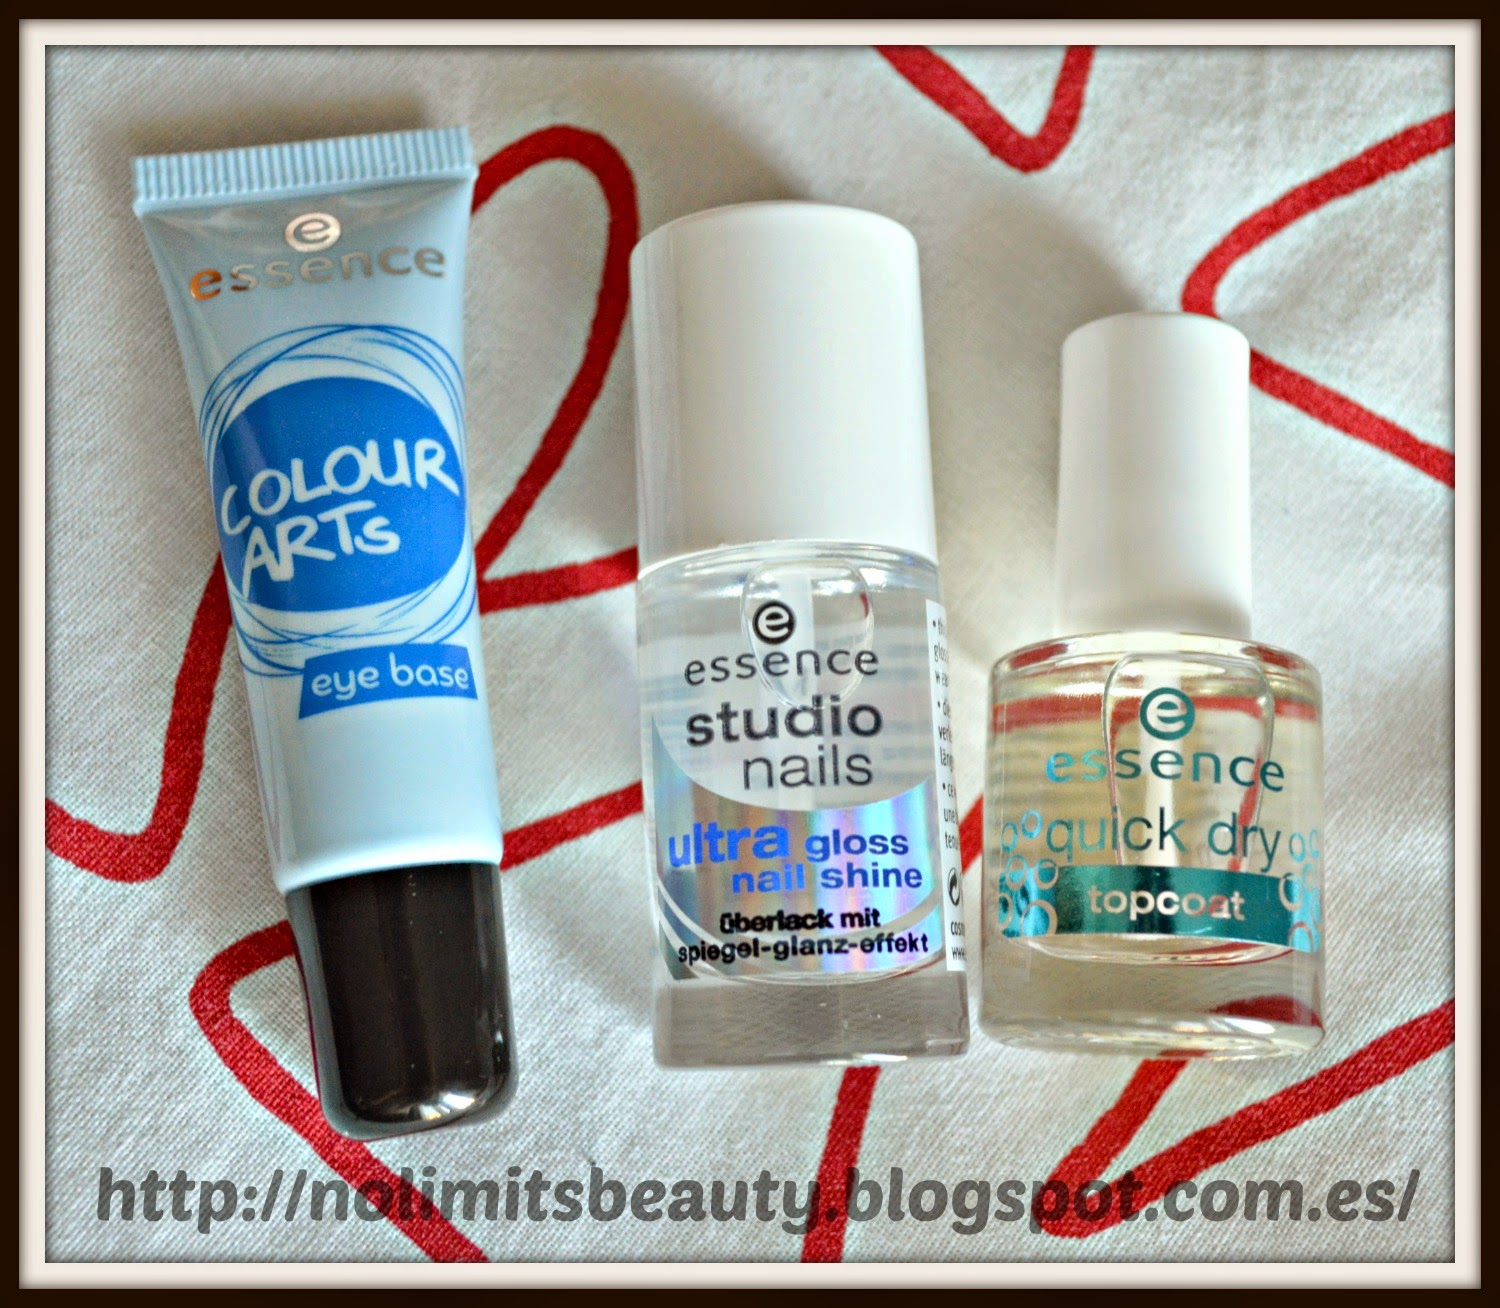 Top Coats y Eye Base de Essence